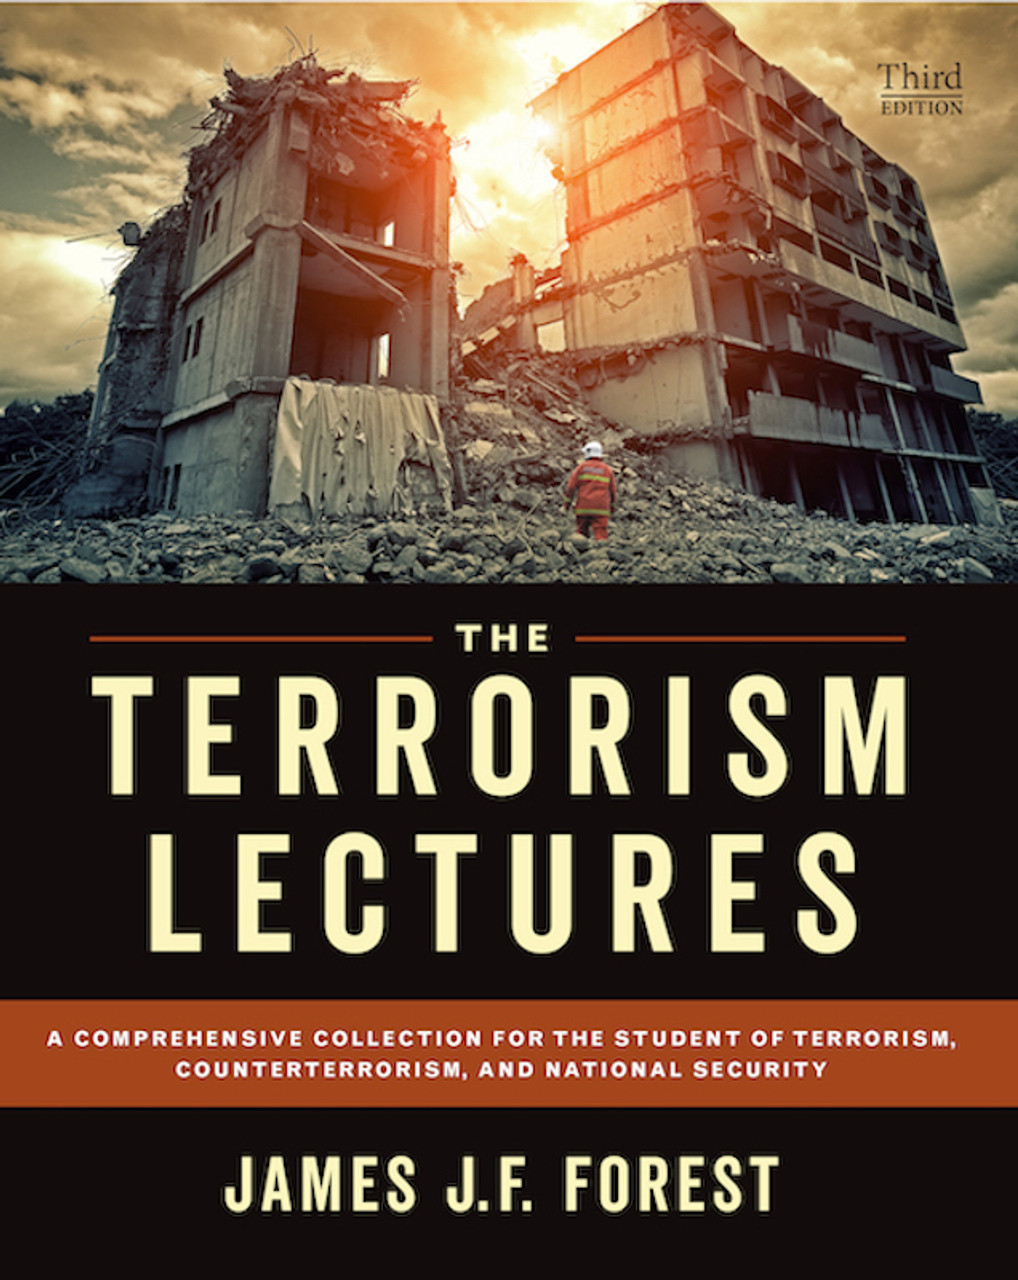 The Terrorism Lectures, 3rd ed.: A Comprehensive Collection for the Student of Terrorism, Counterterrorism, and National Security